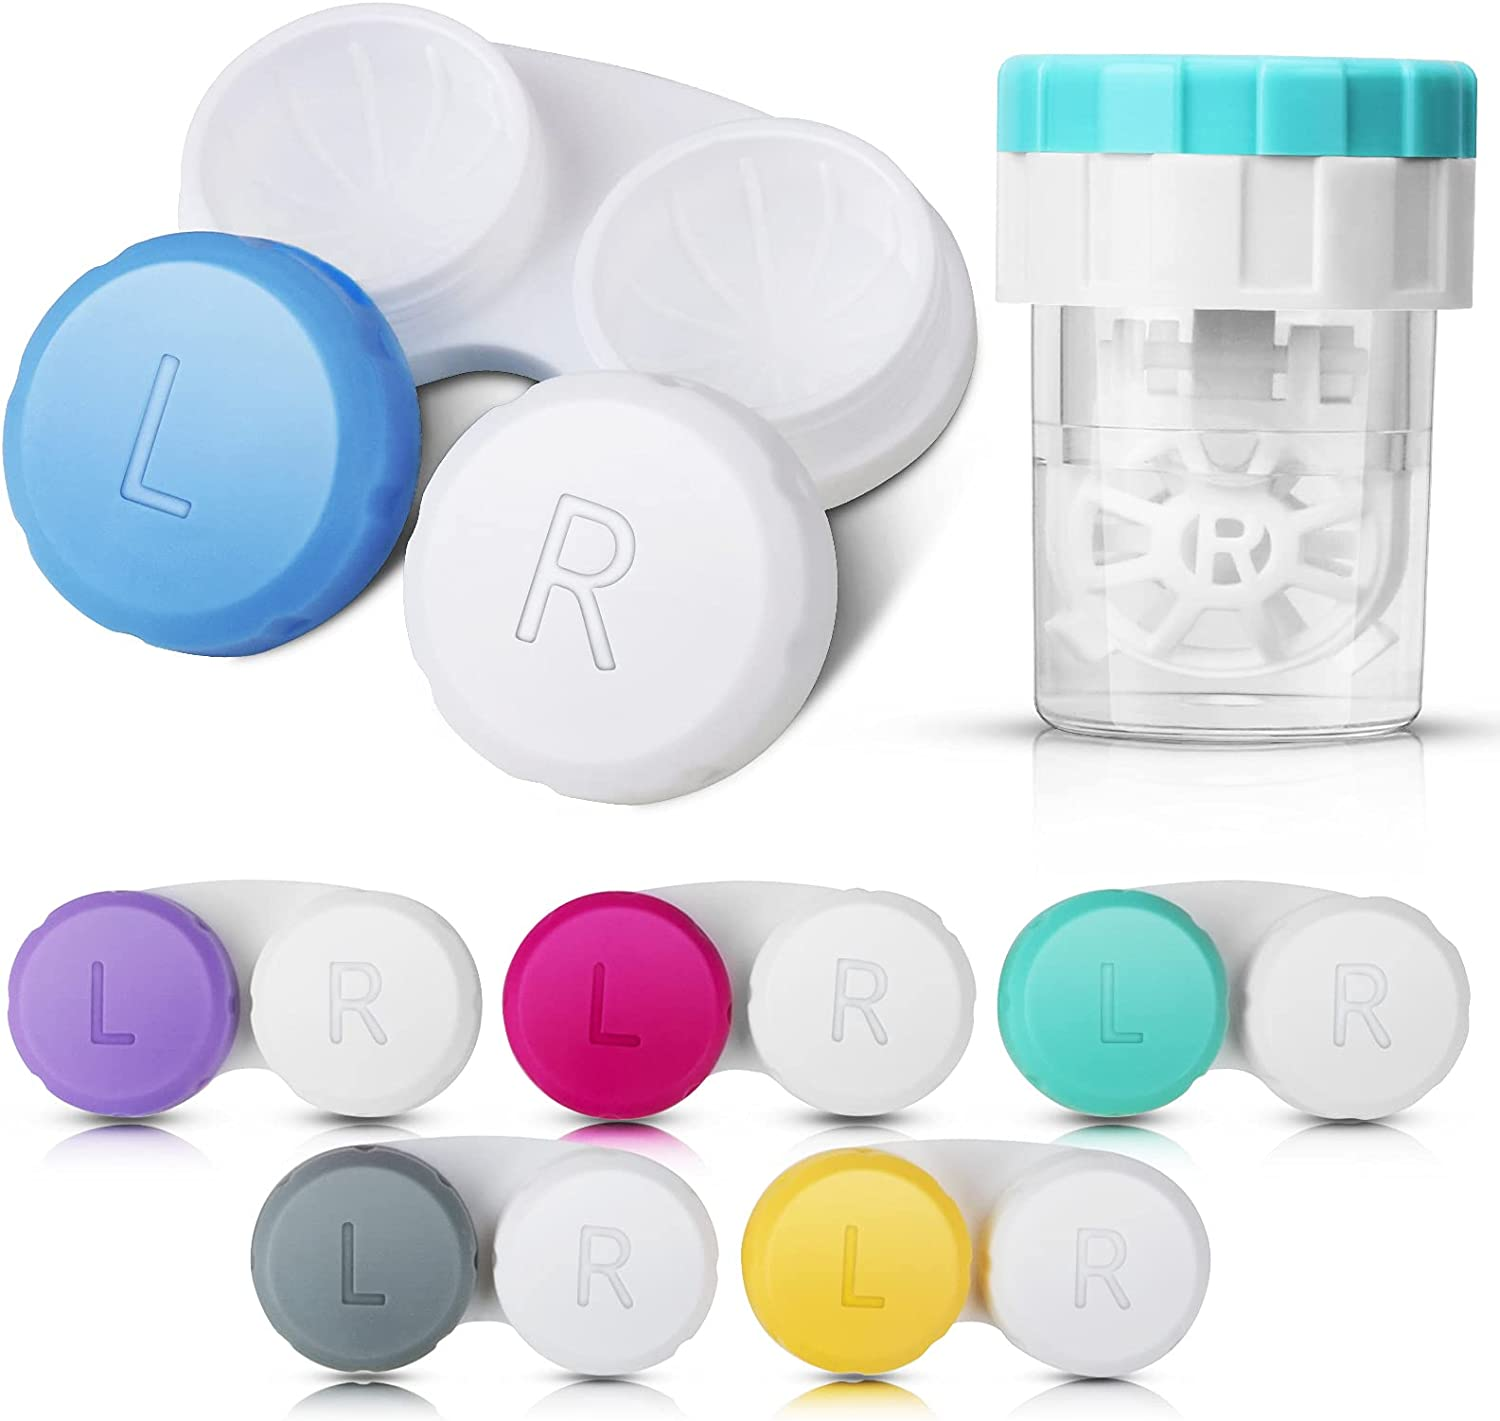 6 Pack Contact Lens Case with Cleaner Washer, Colorful Contact Lenses case, Outdoor Mini Contact Lenses Container for Travel&Home.: Health & Personal Care